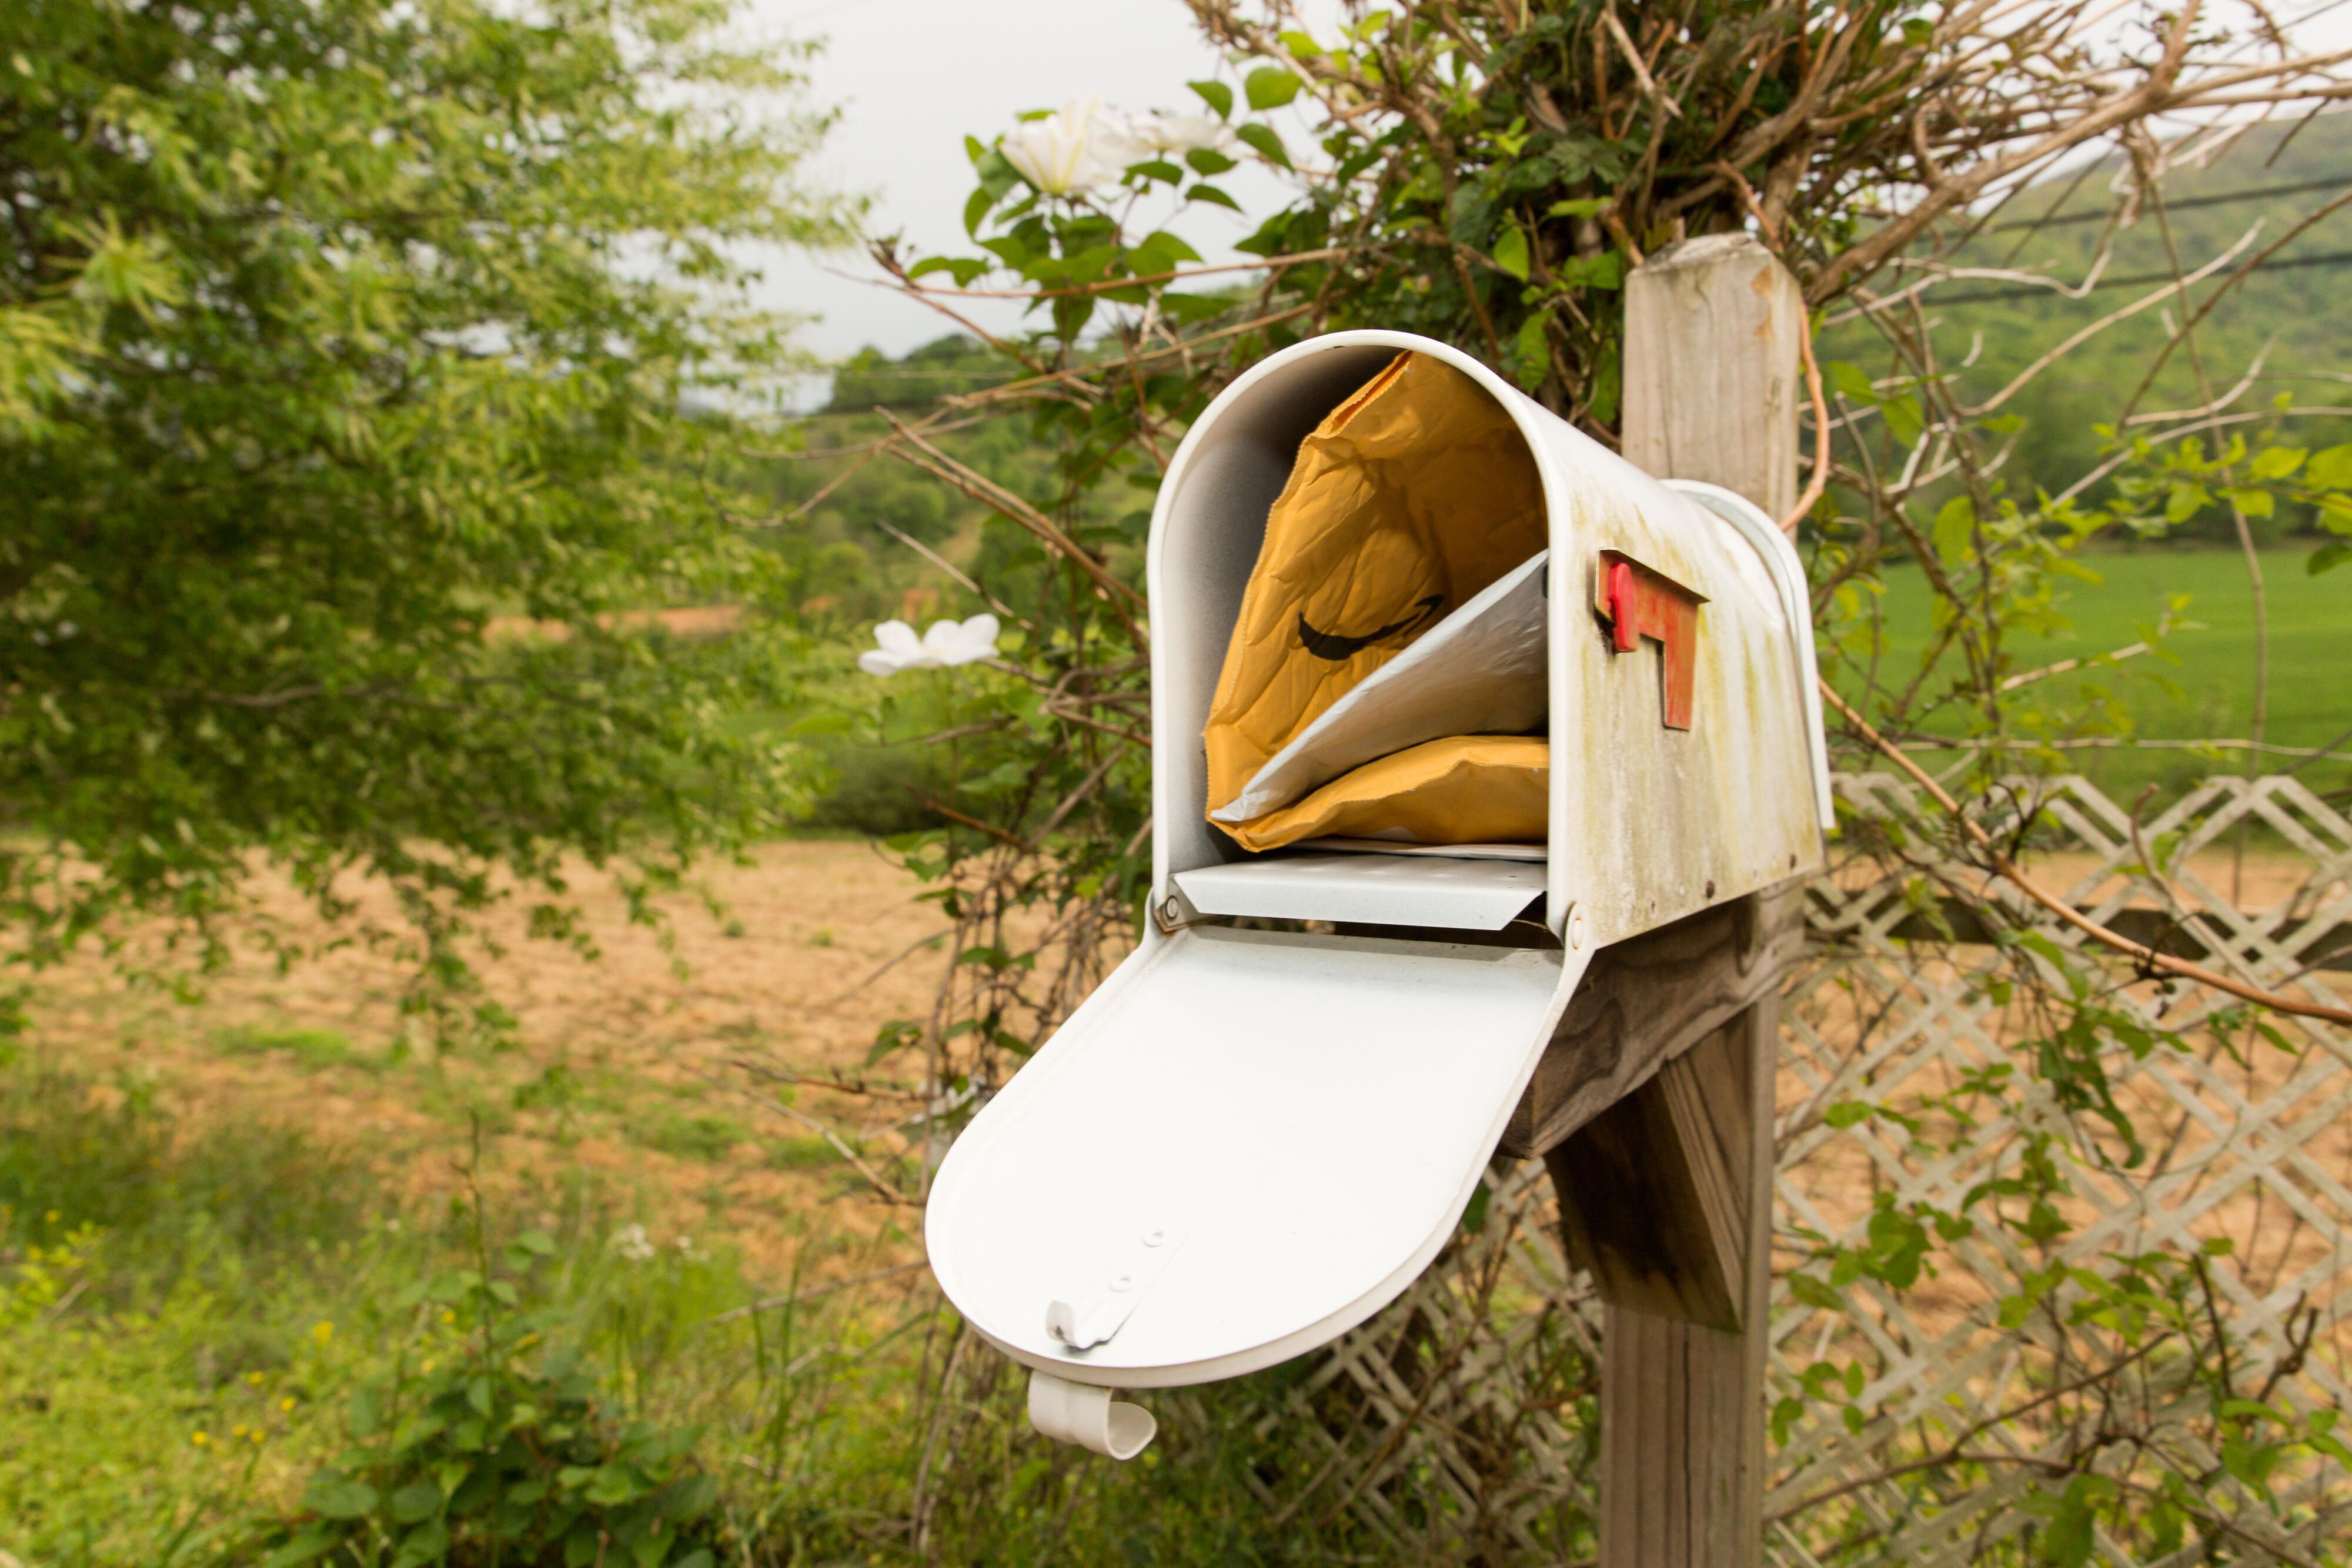 Mail-usps-fedex-amazon-ups-doorstep-mailbox-letter-shipping-virus-stay-at-home-2020-cnet